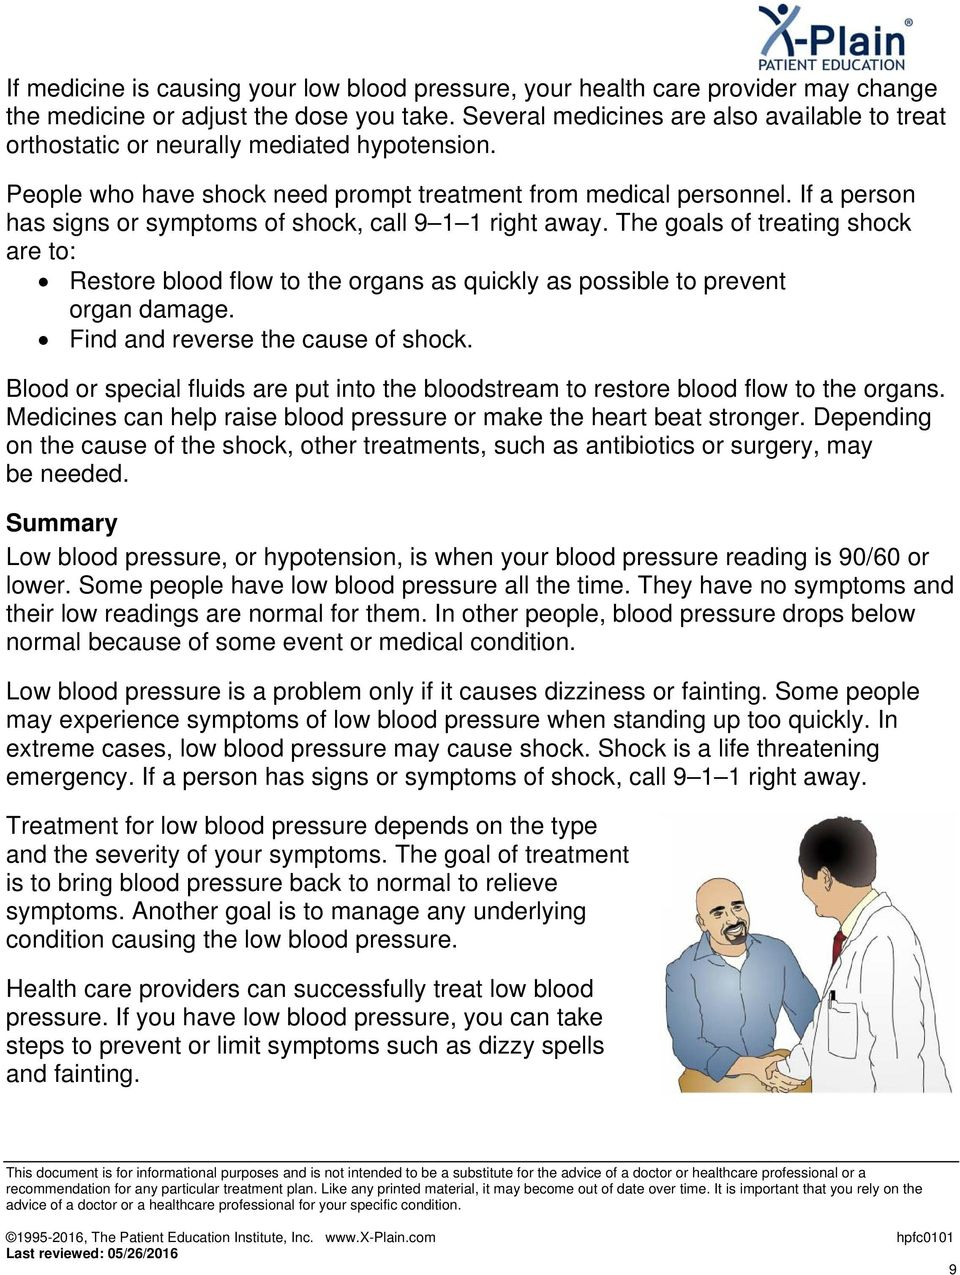 Low Blood Pressure  This reference summary explains low blood